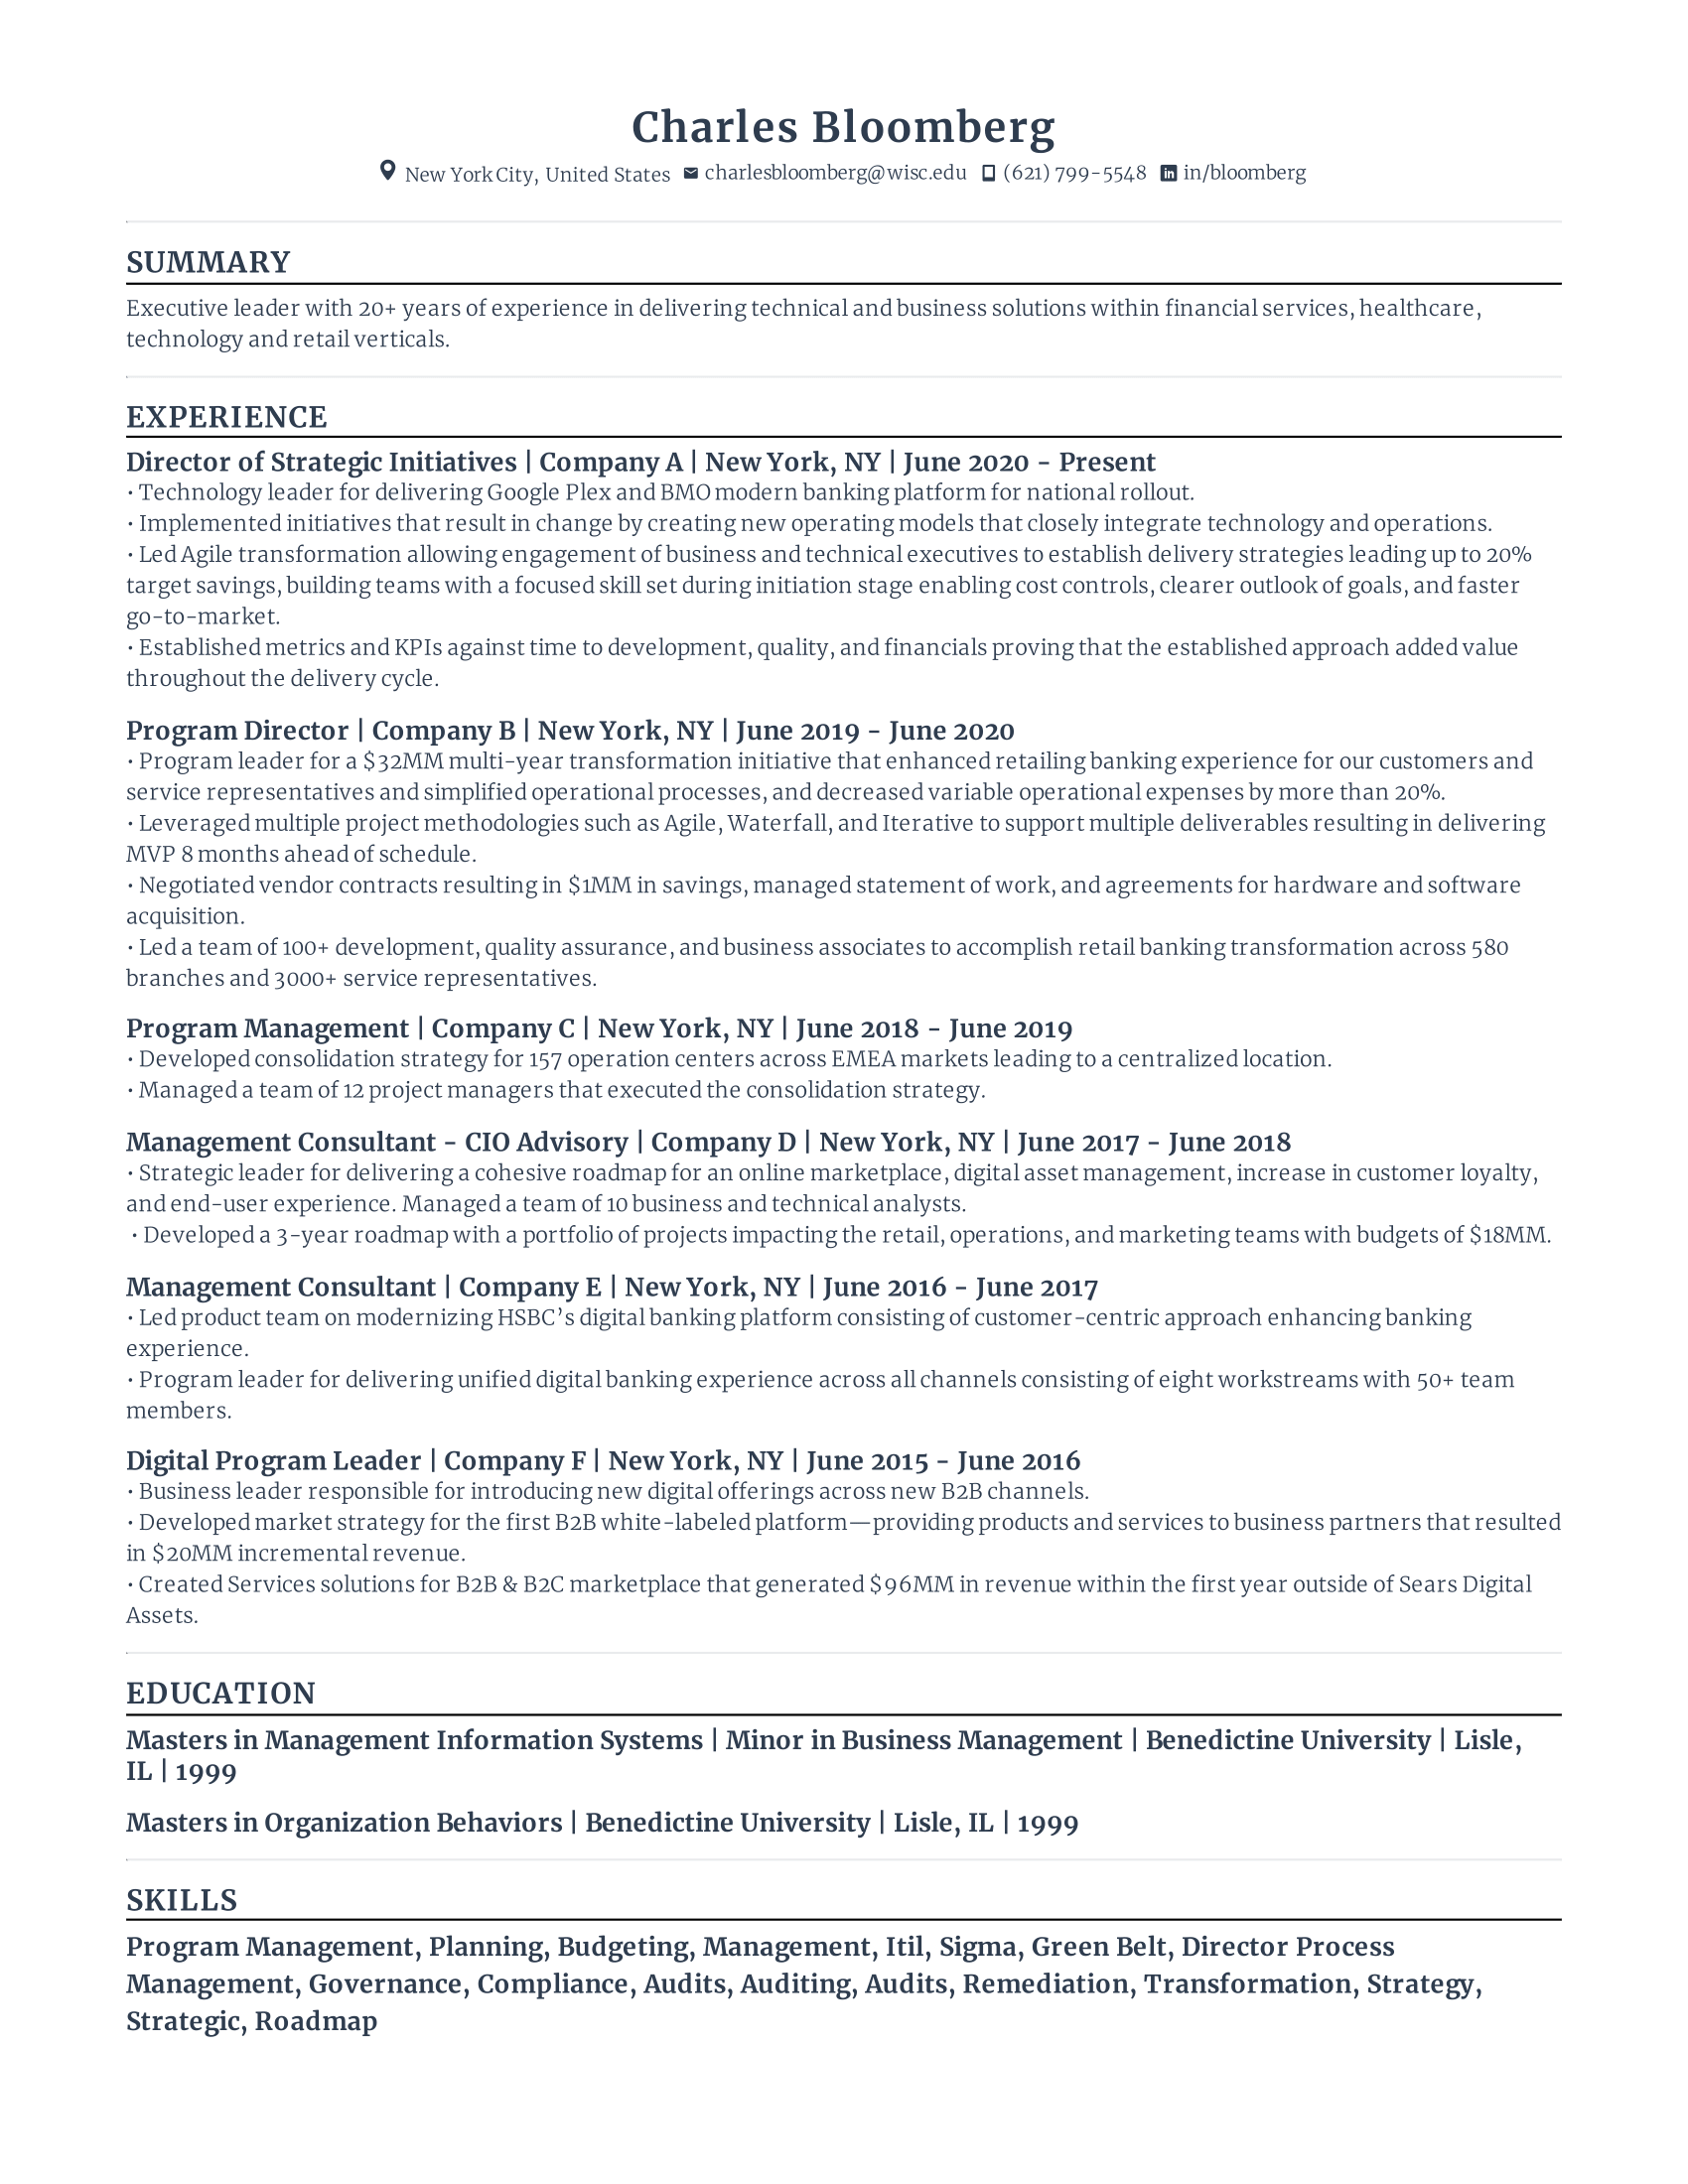 Director of Strategy Resume